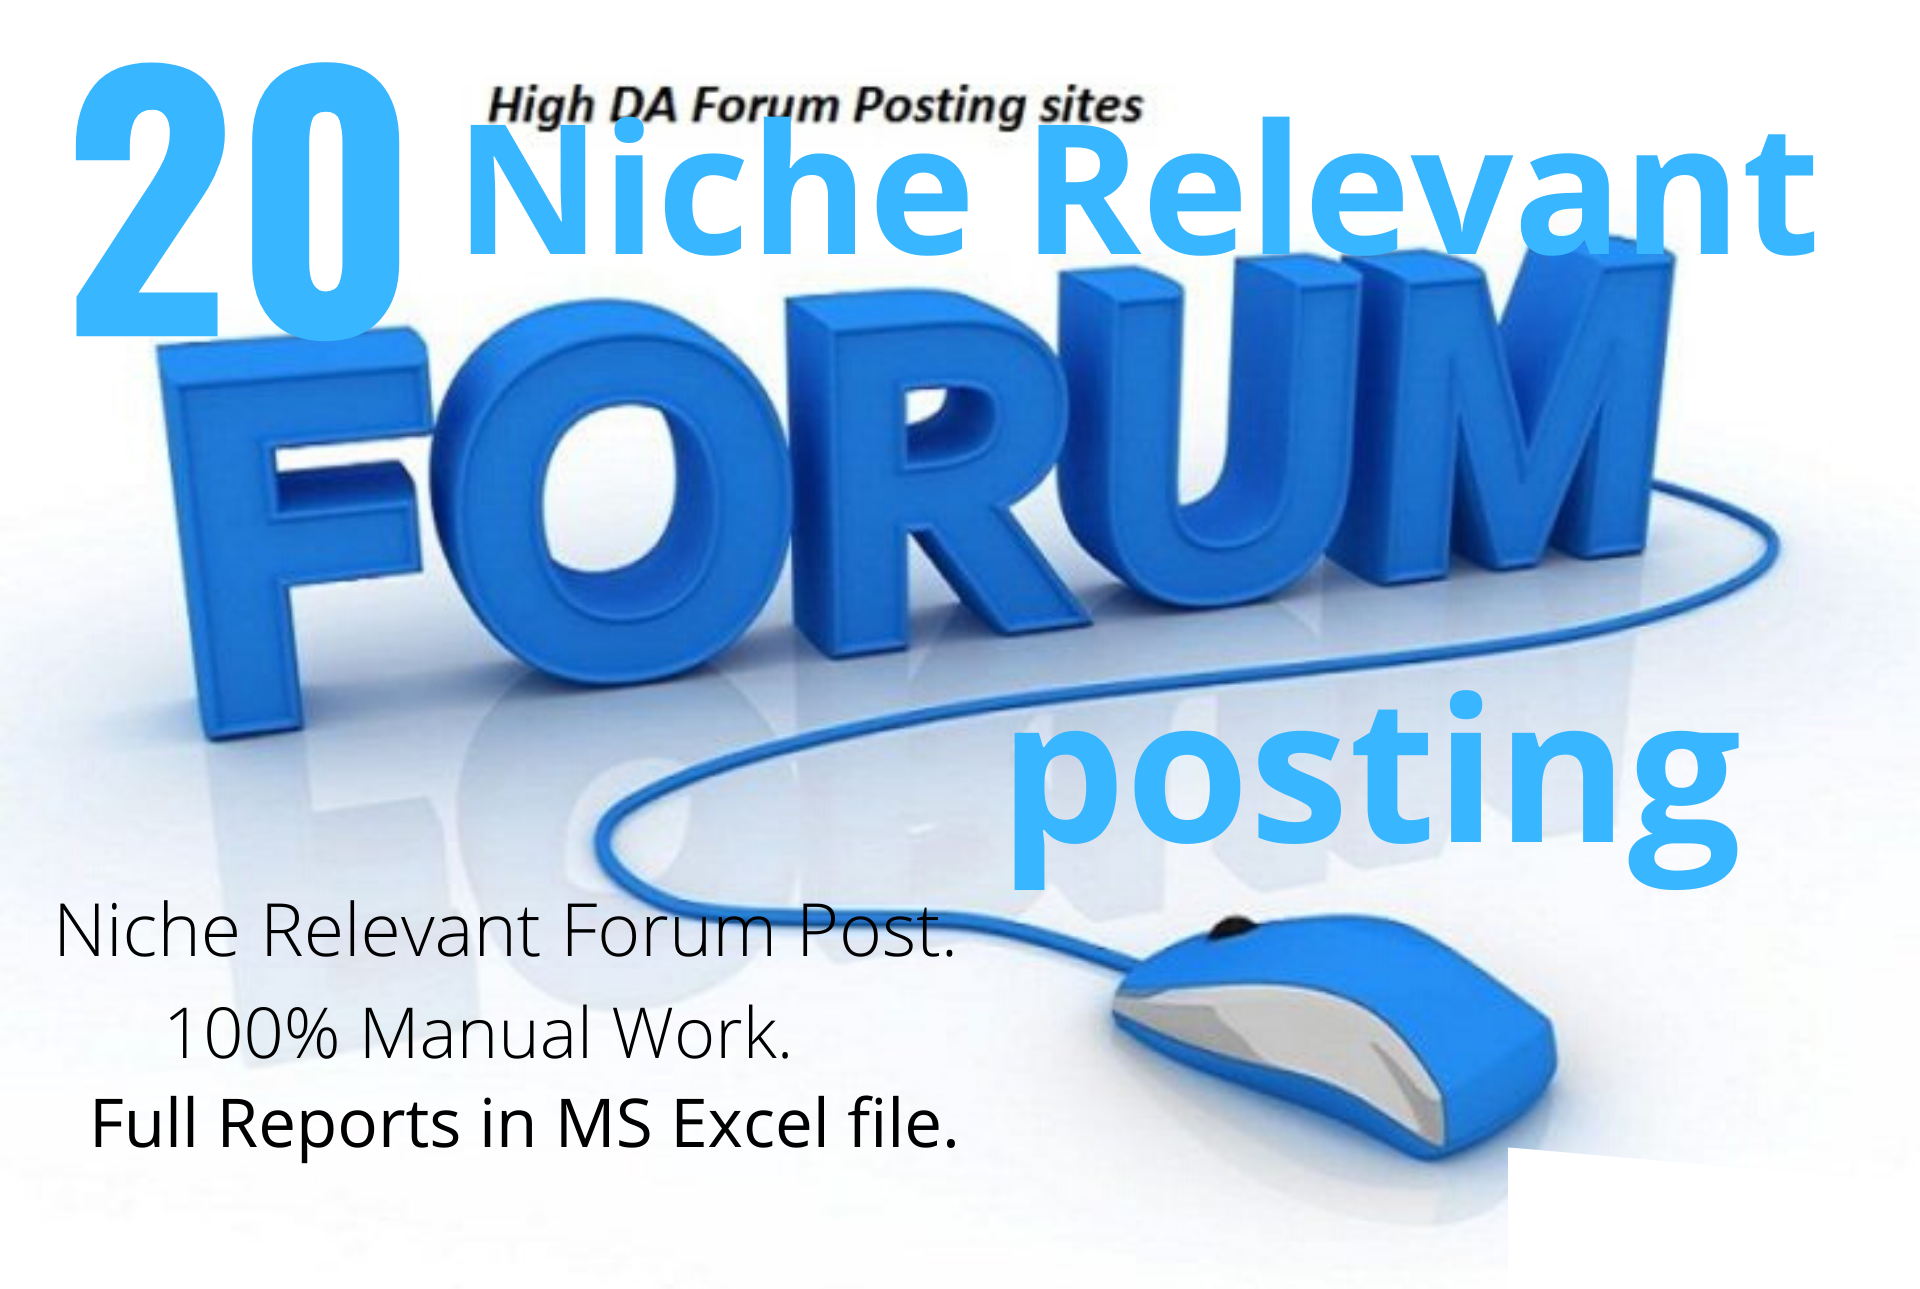 Give you 20 Niche Relevant Forum Posting